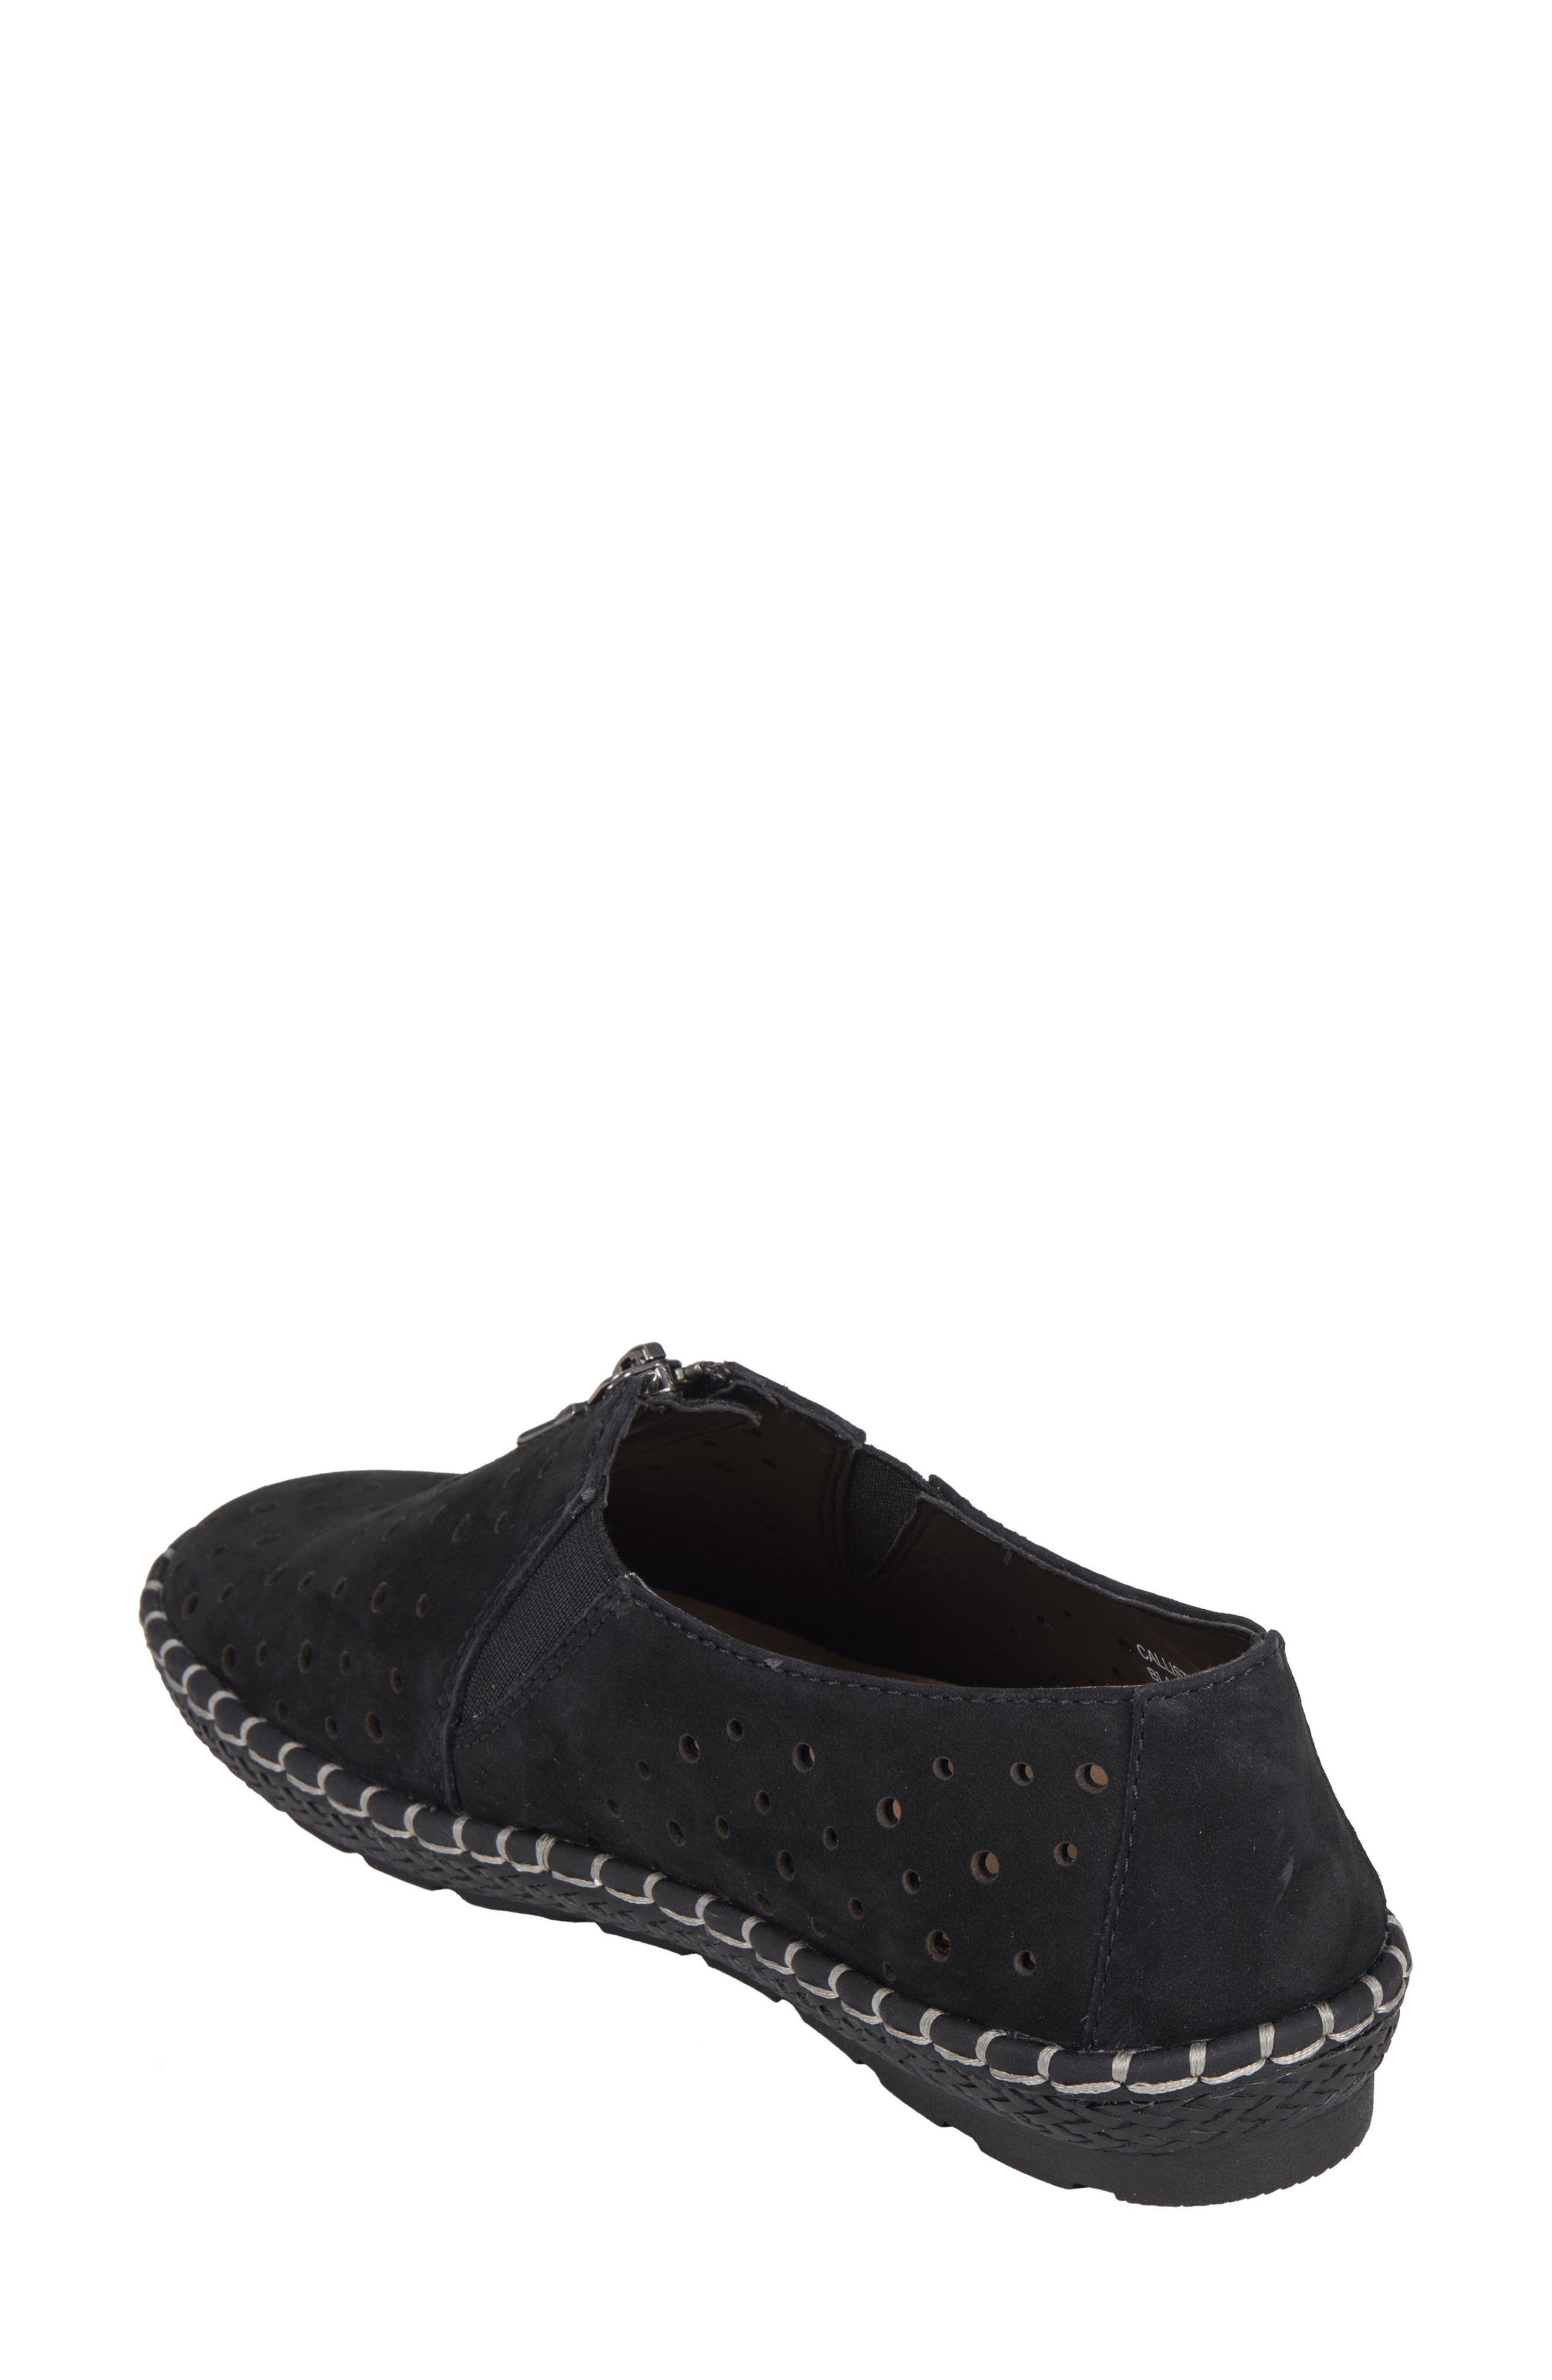 Callisto Perforated Zip Moccasin,                             Alternate thumbnail 2, color,                             001